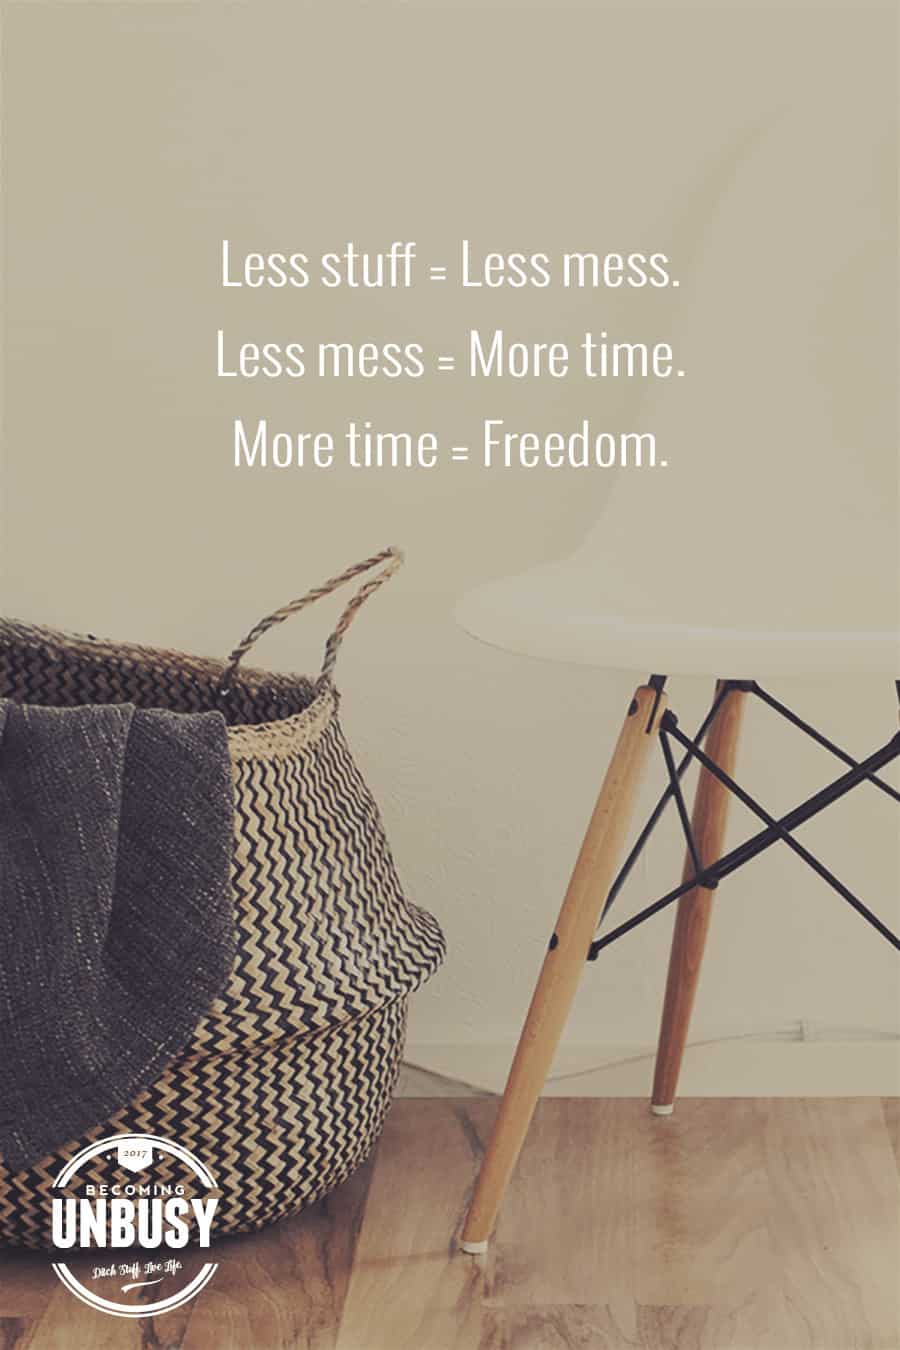 We can all agree,less stuff = less mess. In turn, less mess = more time. And of course, free time = Becoming UnBusy (for adults and kids alike). *Loving this post and this Becoming UnBusy site.